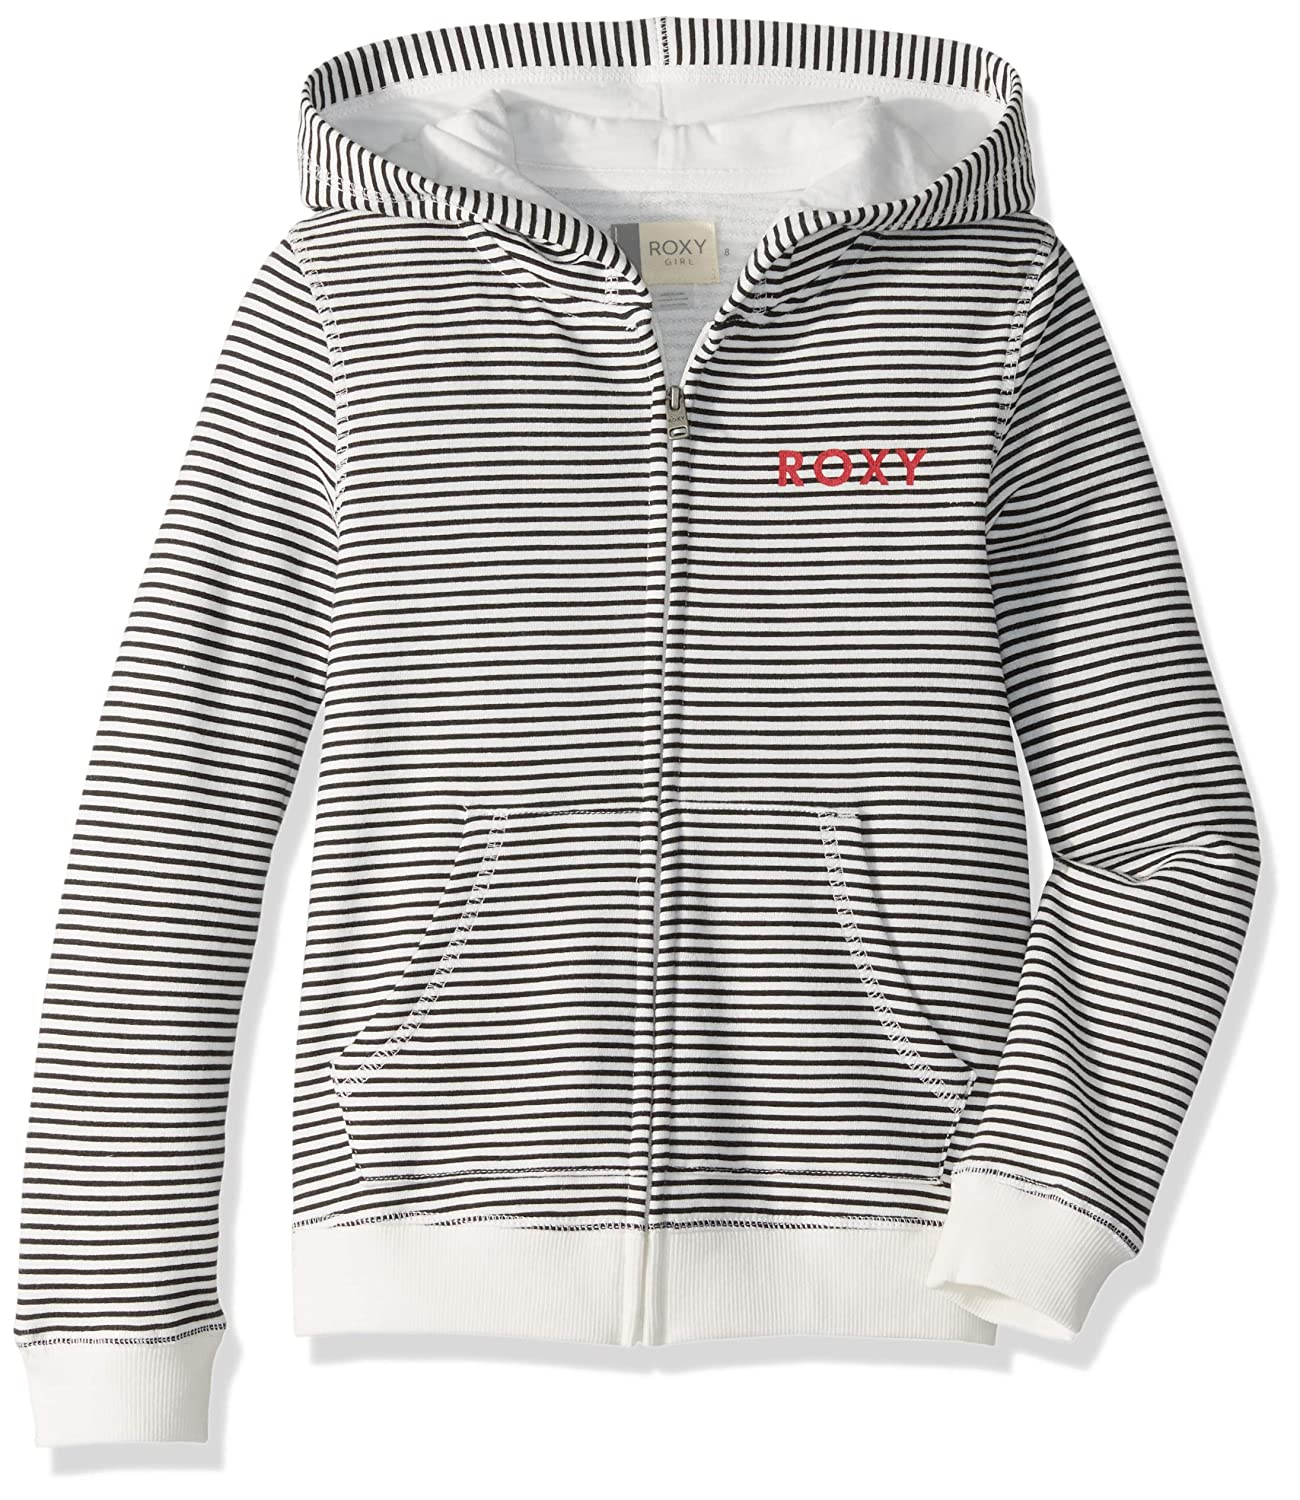 ROXY Girls Big Just a Little Zip-up Sweatshirt